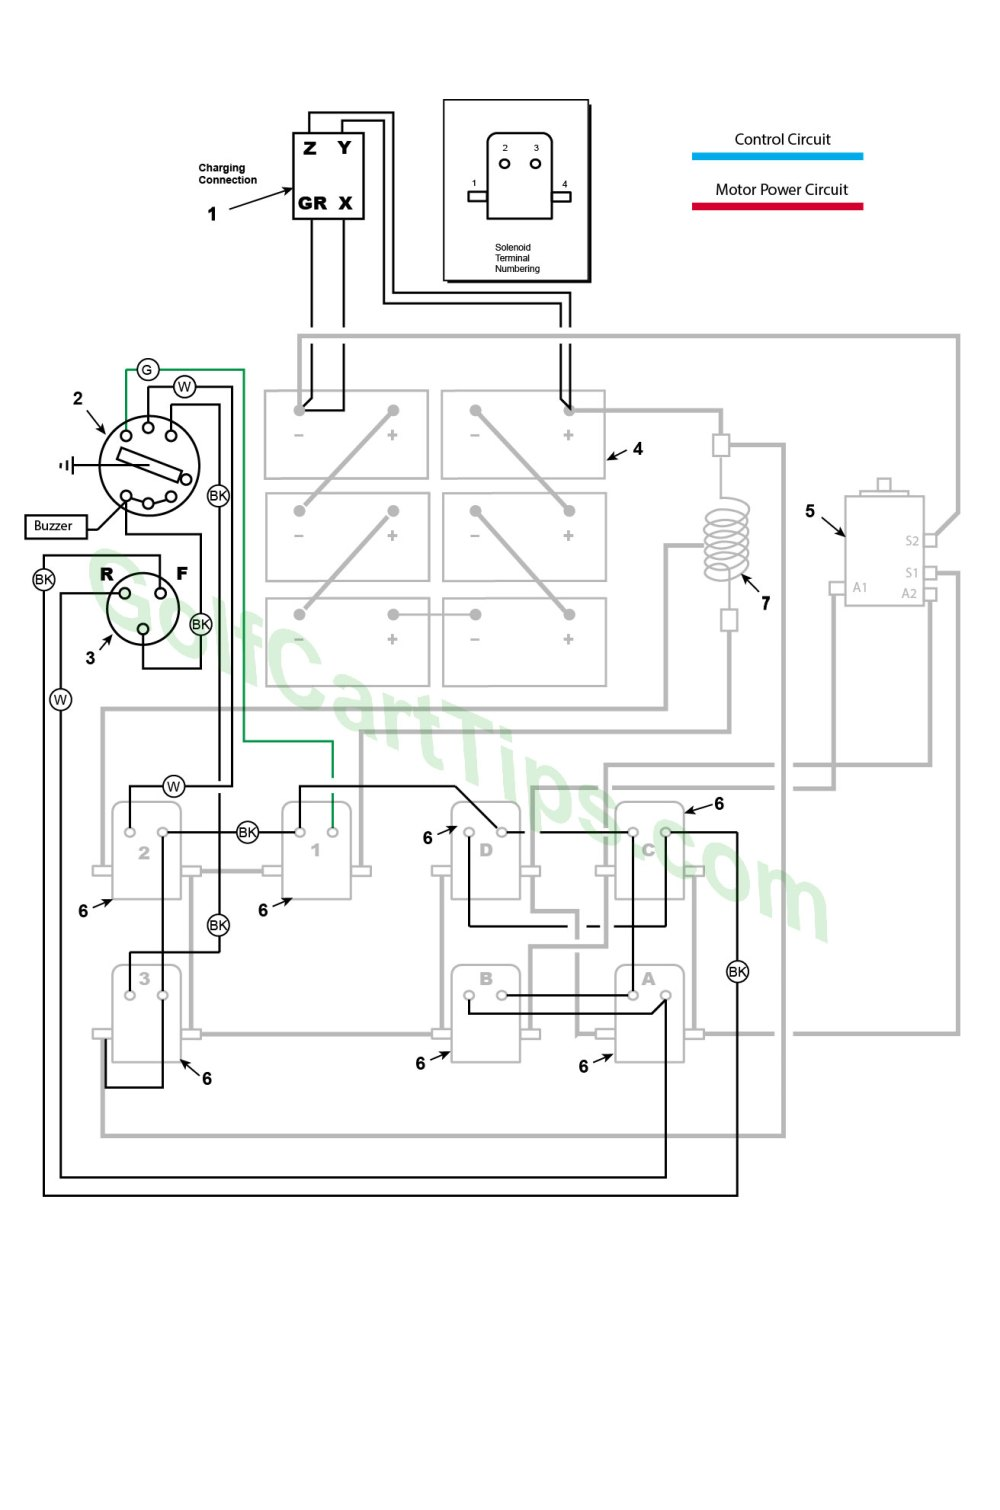 medium resolution of ezgo wiring diagrams model 300 late 1950 s 1996 ezgo golf cart wiring diagram ezgo buzzer wiring